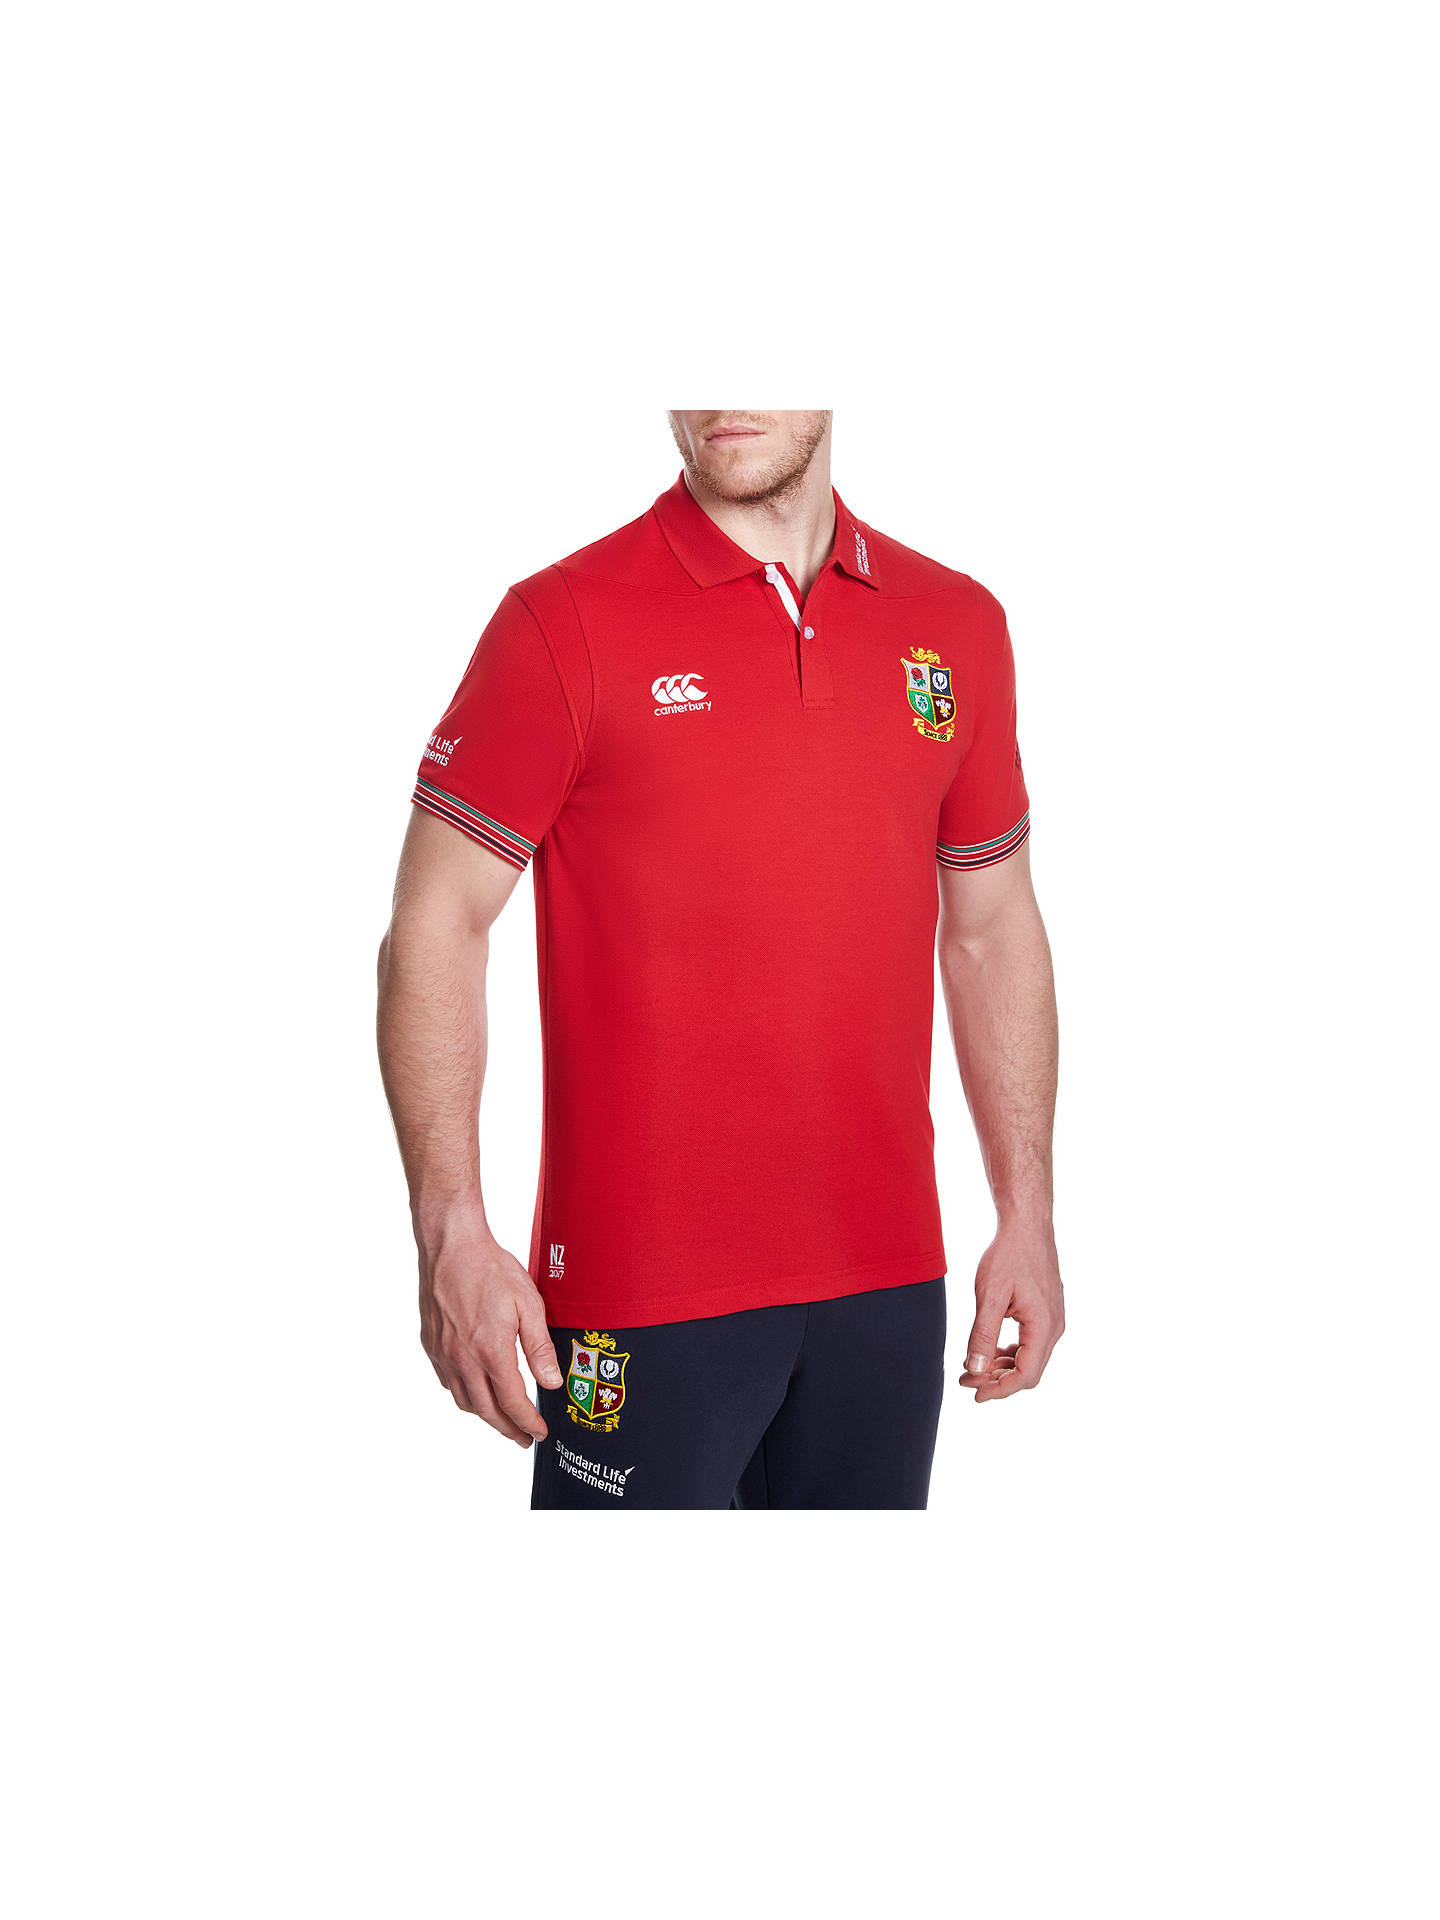 18cc945f5ad Buy Canterbury of New Zealand British and Irish Lions Rugby Polo Shirt,  Red, S ...